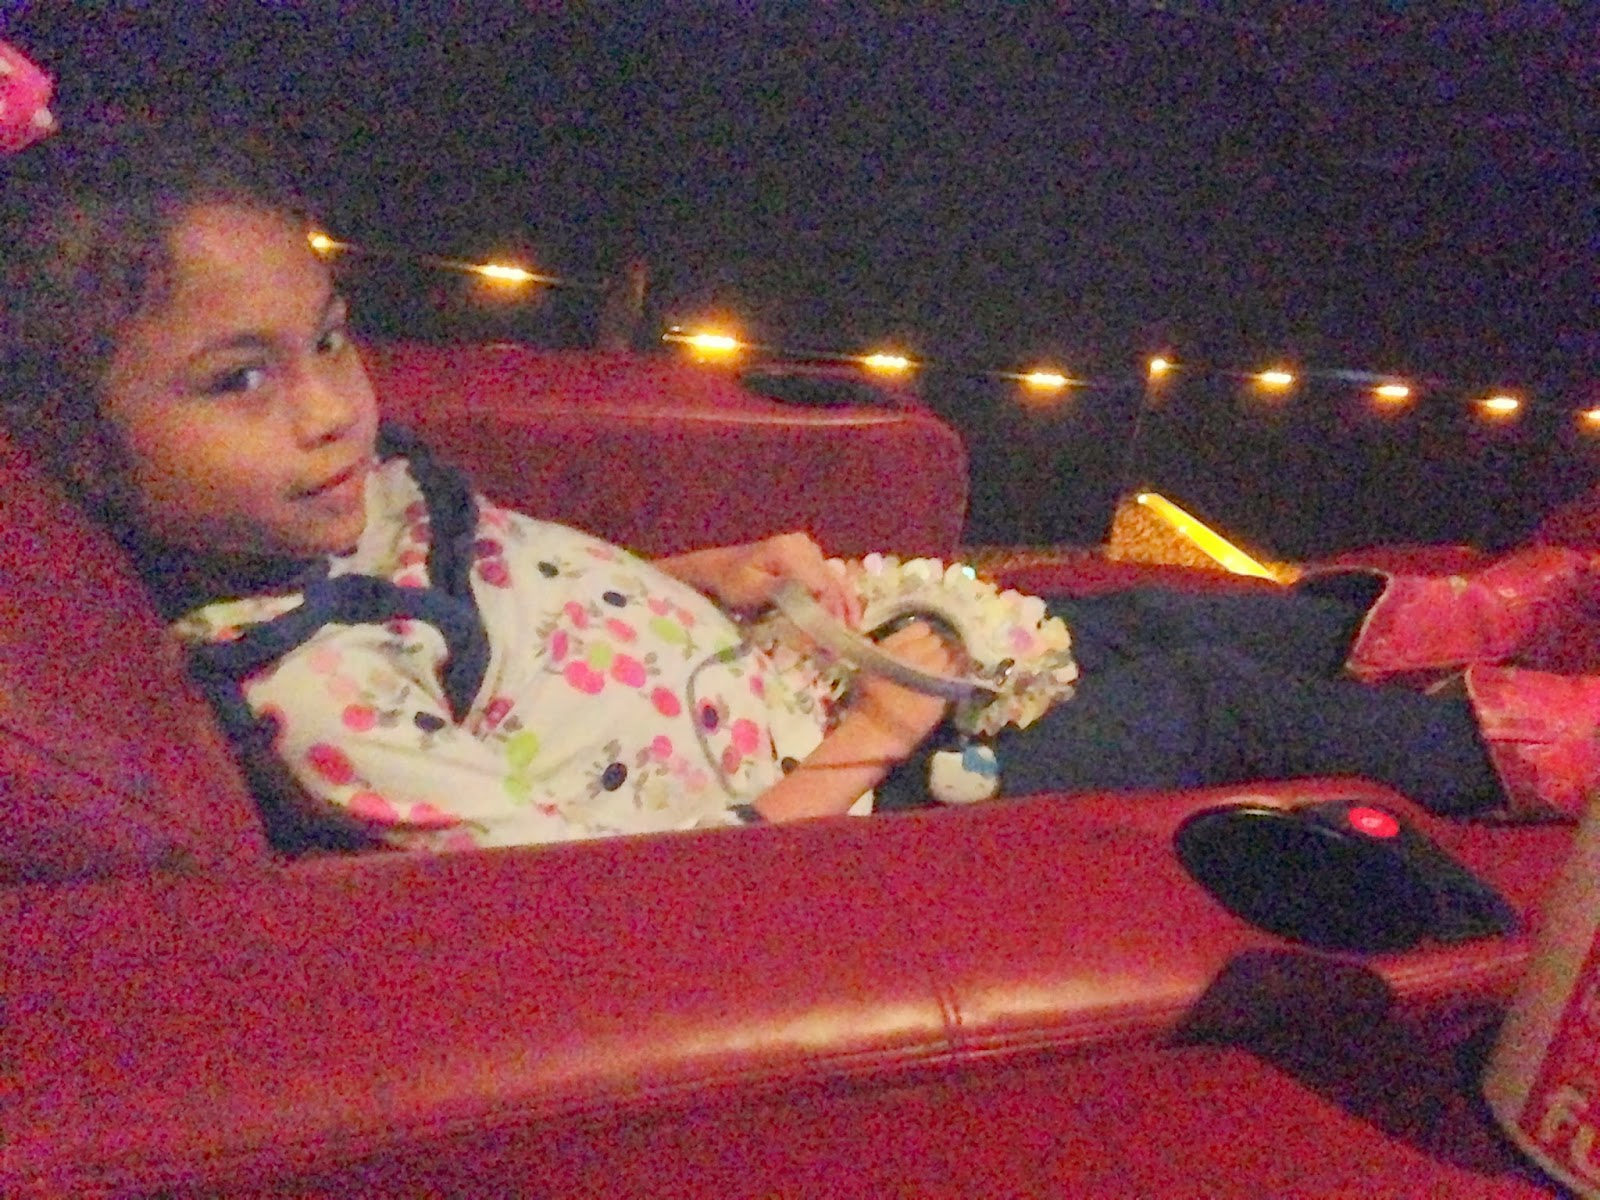 Amc Theaters Freehold Nj Red Plush Recliners At Amc Theater The Dias Family Adventures